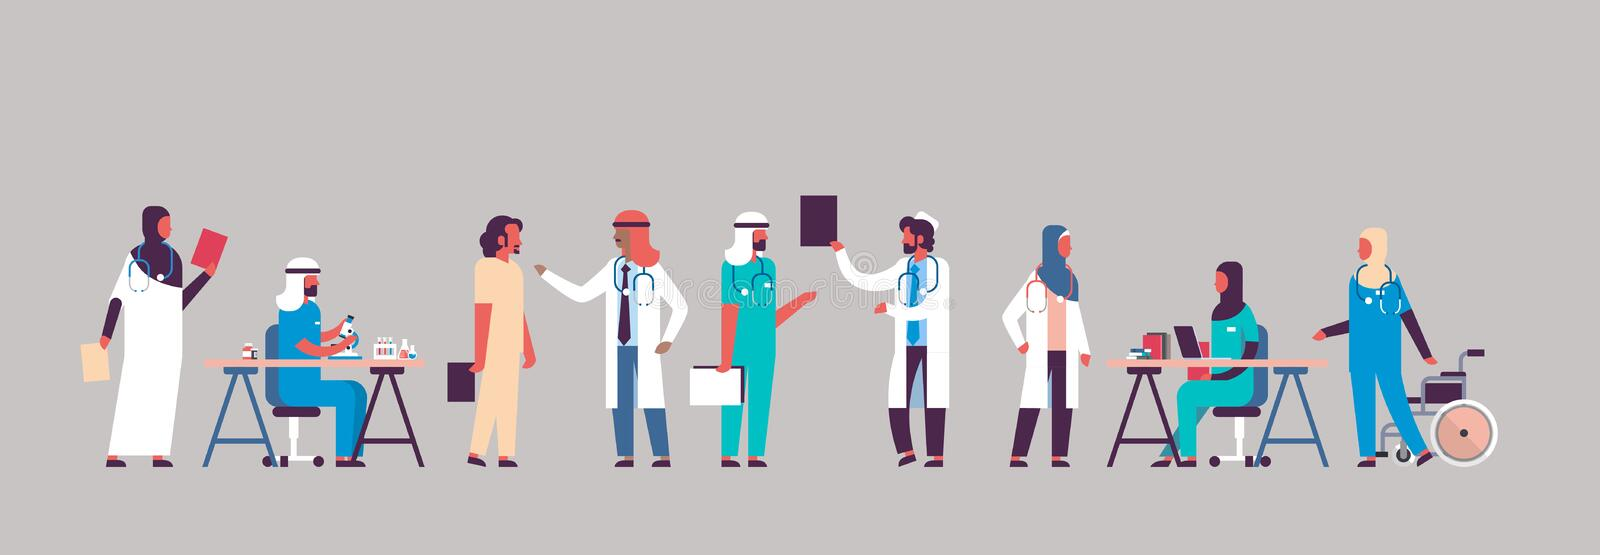 Group arabic doctors hospital communication making scientific experiments diverse medical workers arab man woman cartoon royalty free illustration